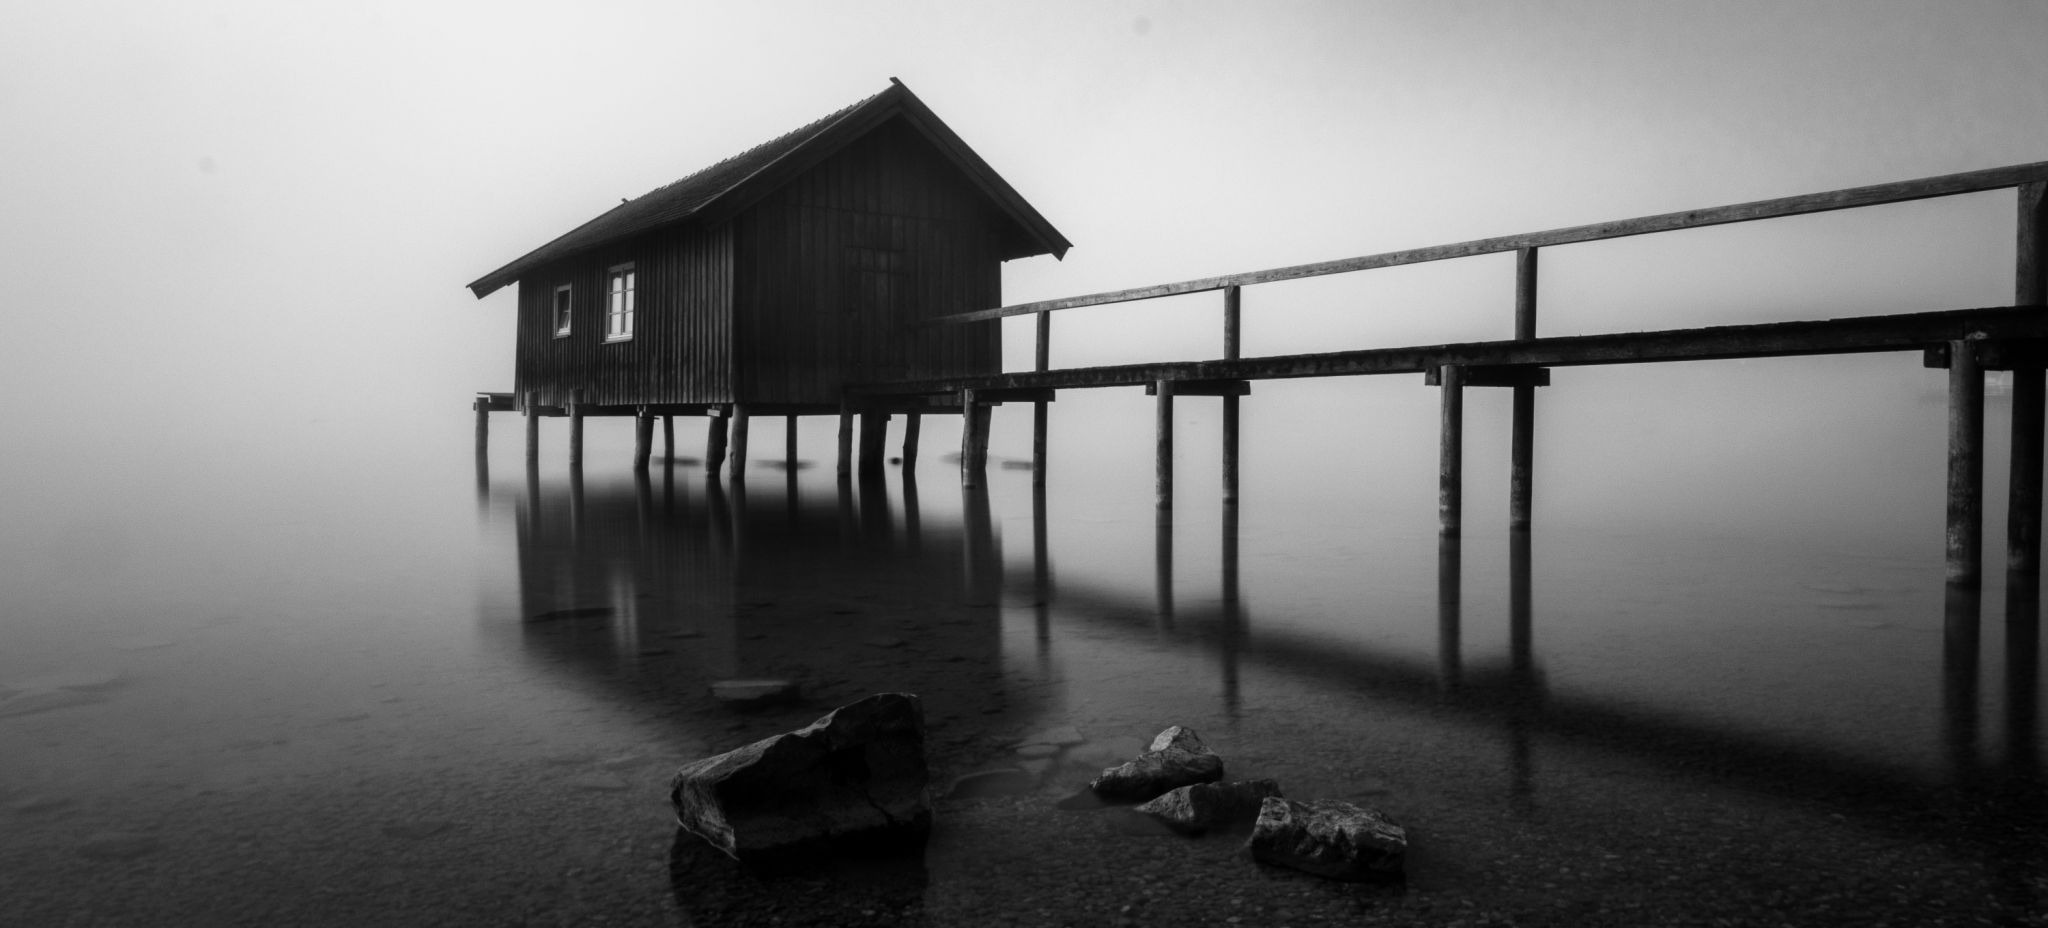 Cabin at the Ammersee, Germany